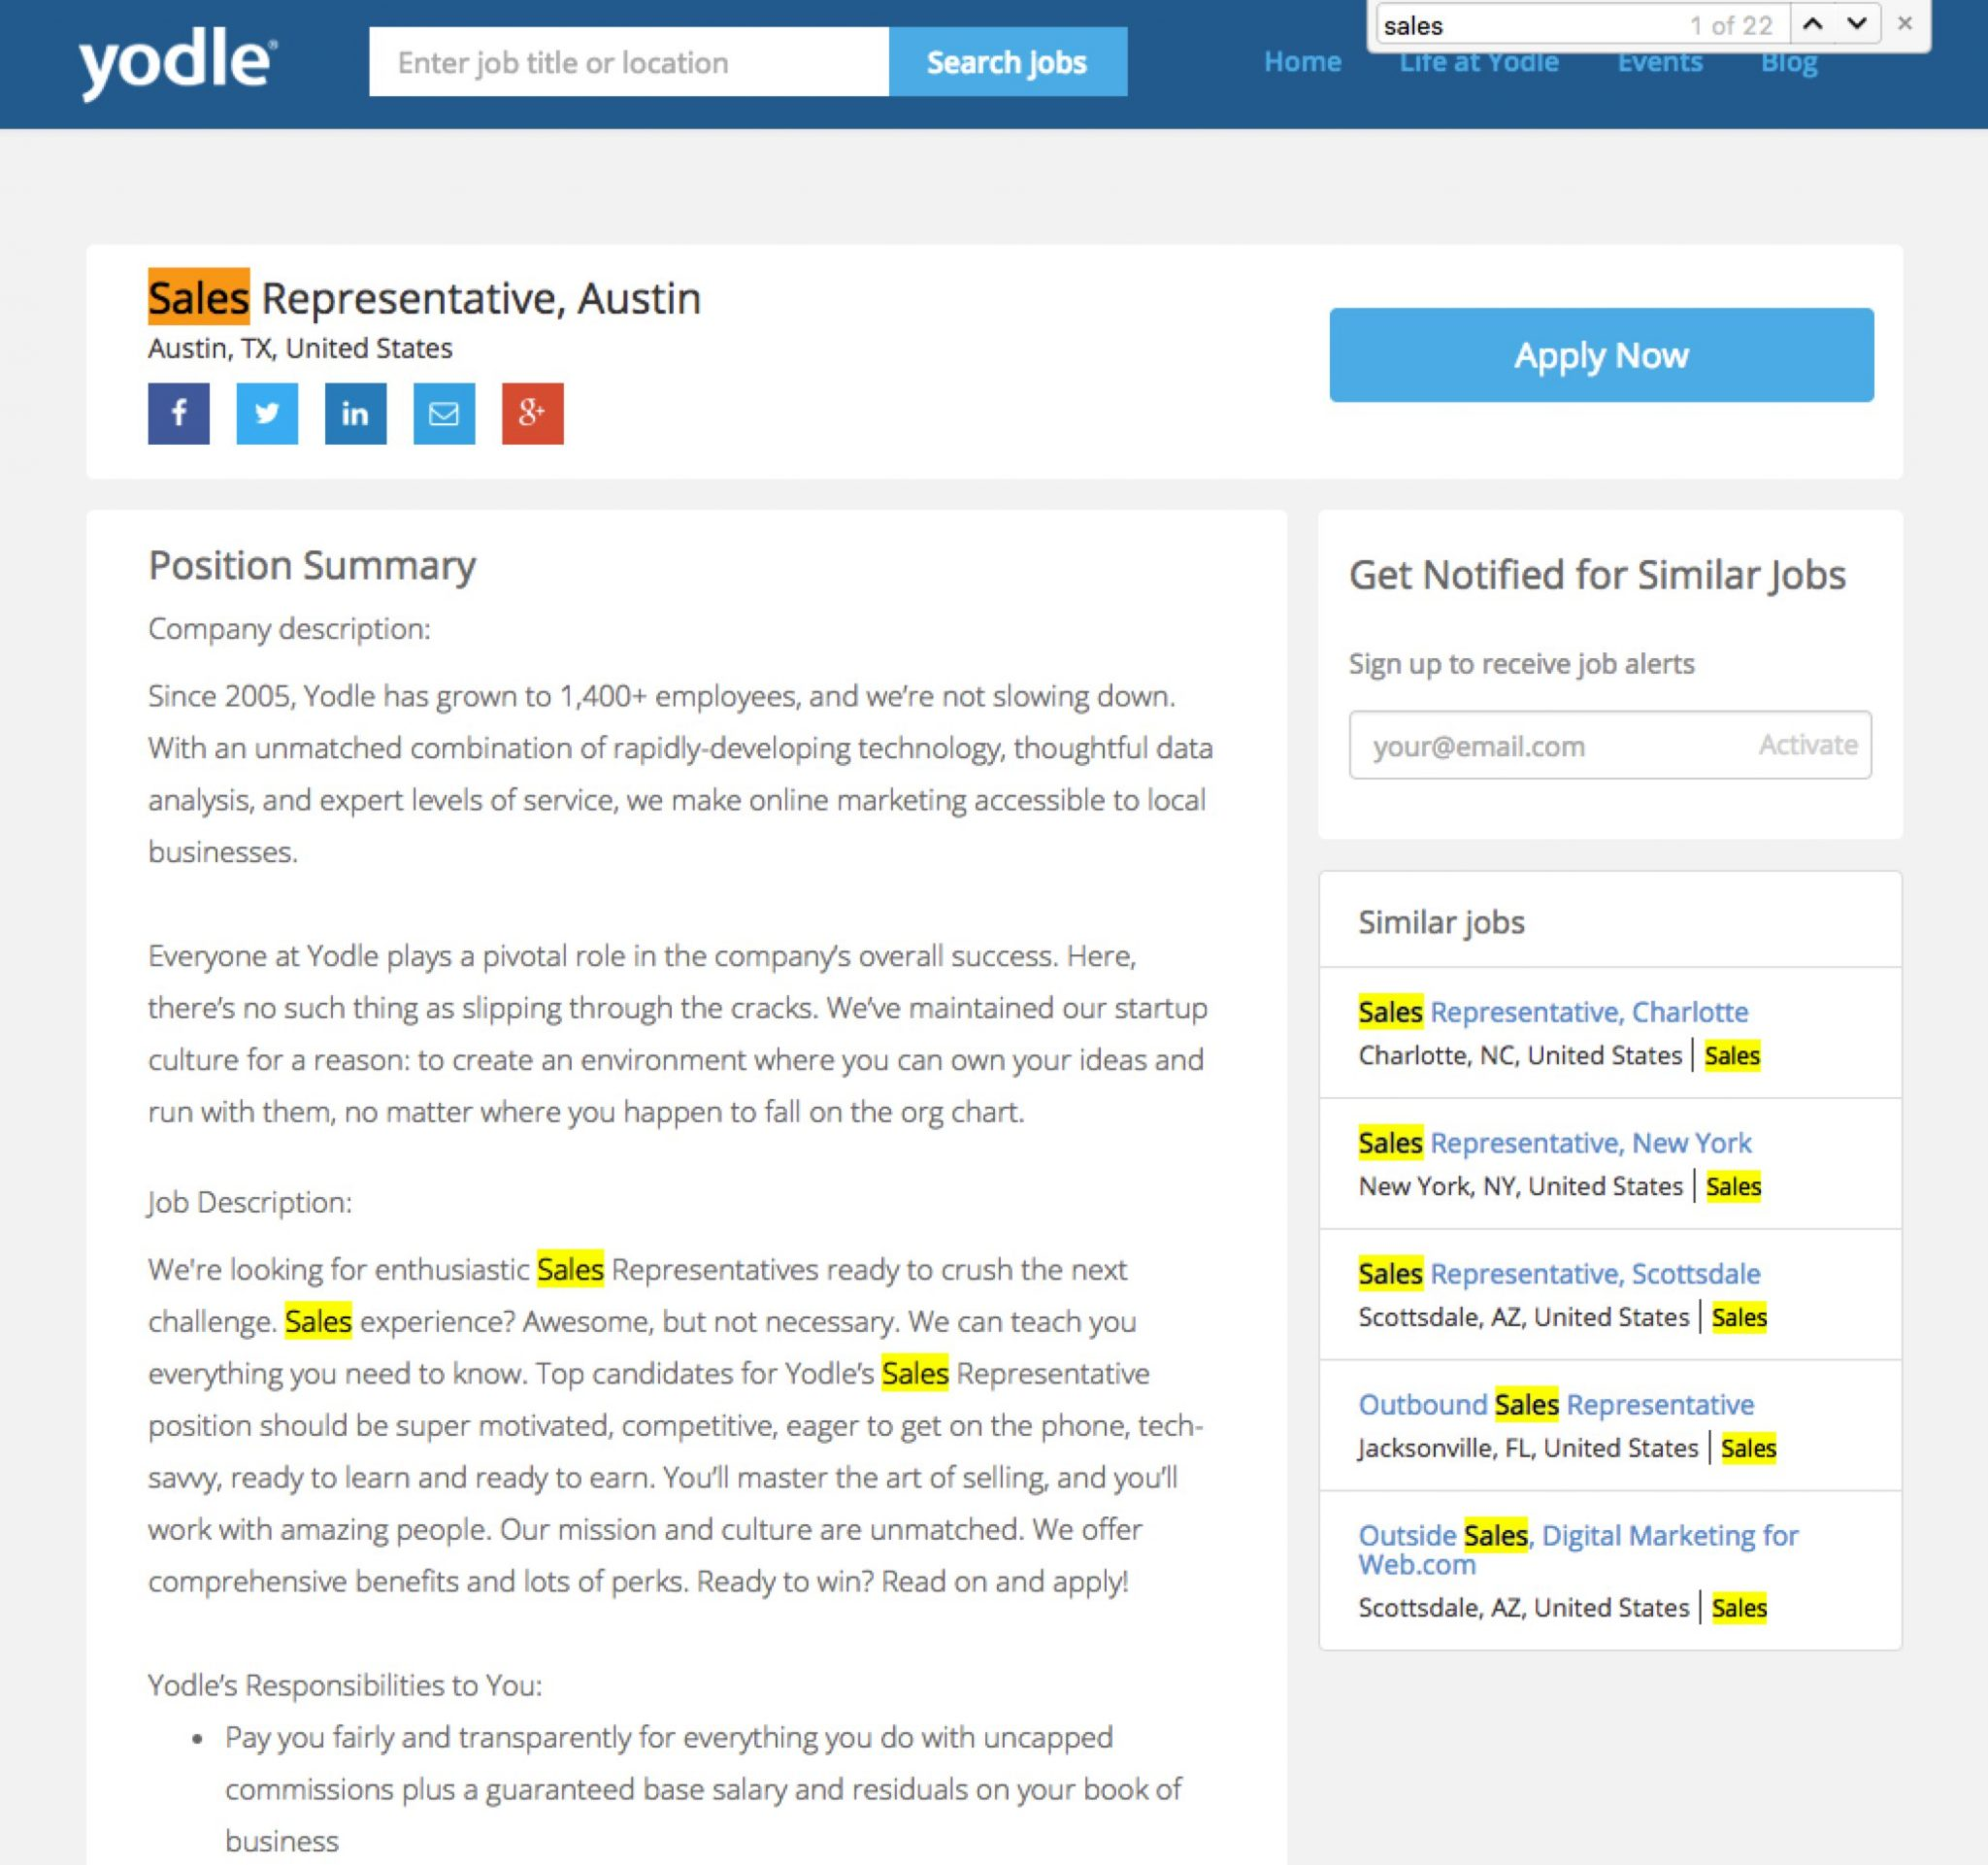 Recruitment-SEO-yodle-sales-rep-job-description-p-1-ongig-blog